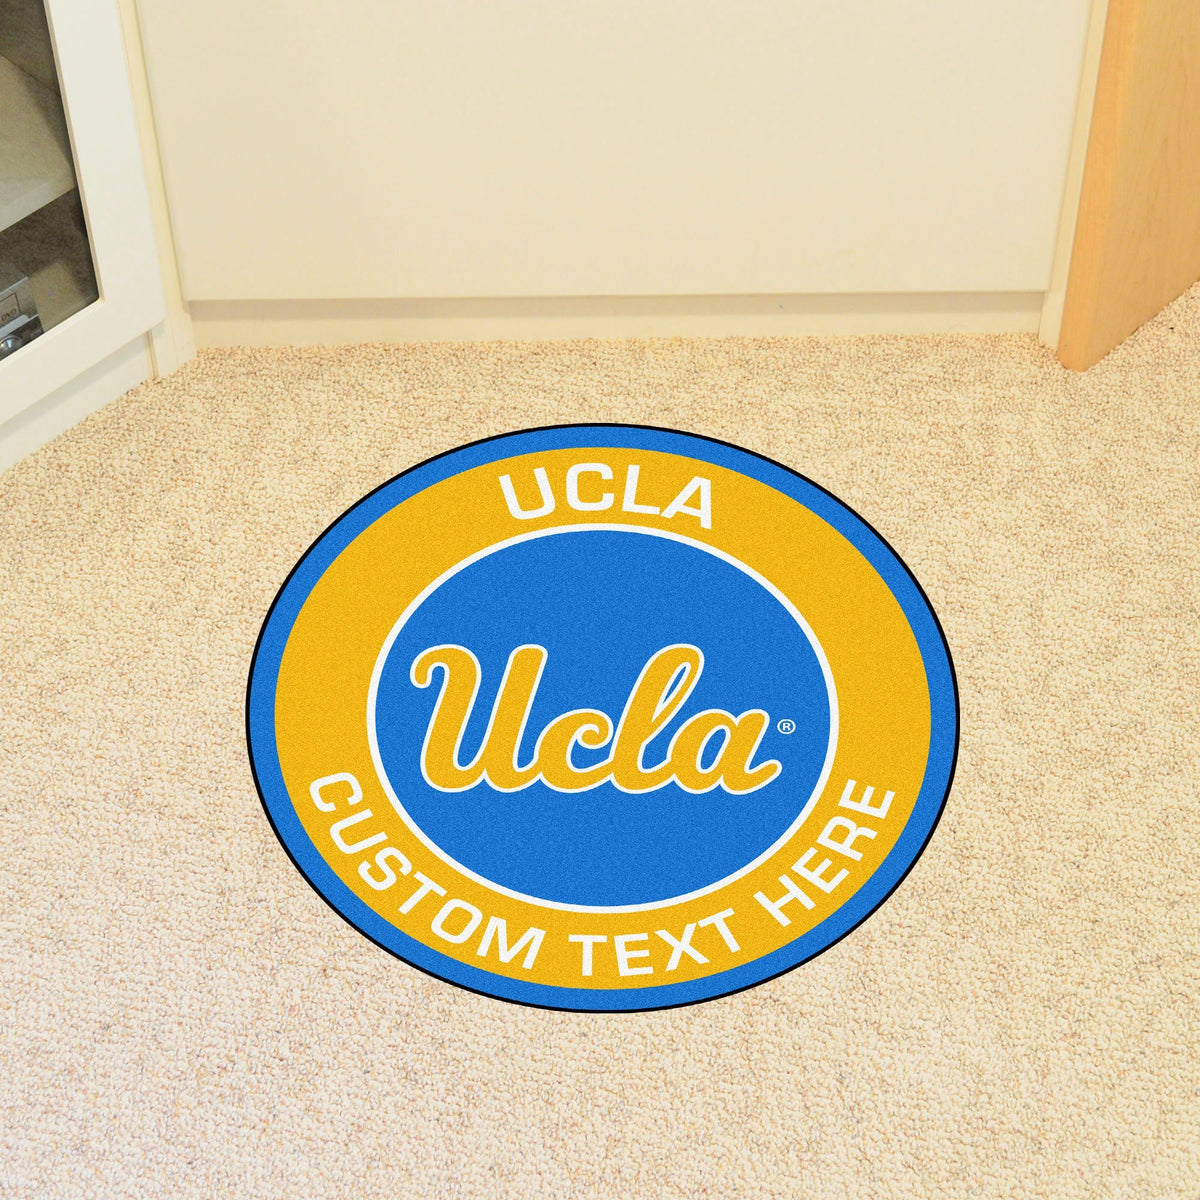 Collegiate Personalized Roundel Mat Personalized Roundel Mat Fan Mats University of California - Los Angeles (UCLA)